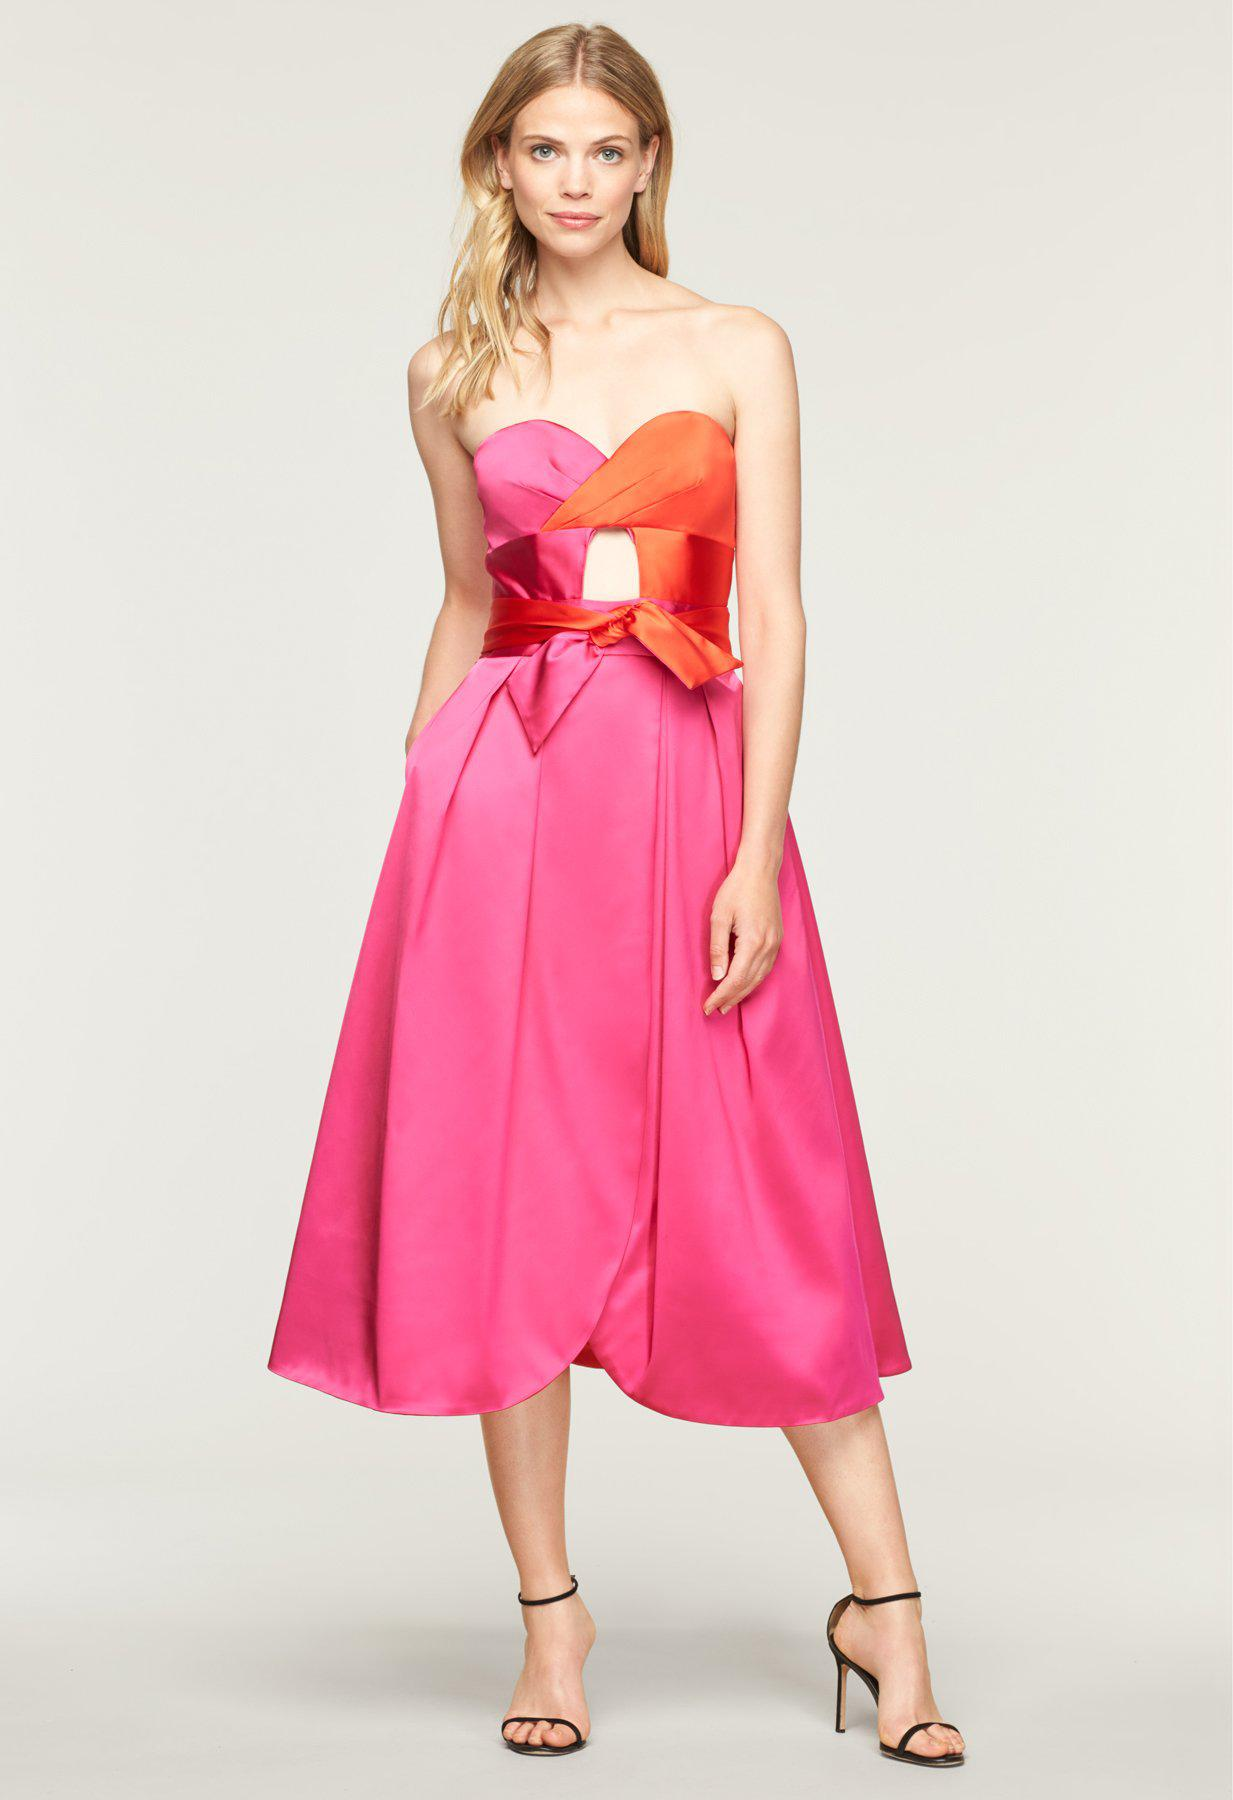 1f96dee7648c MILLY Stretch Satin Haley Dress in Pink - Save 50% - Lyst